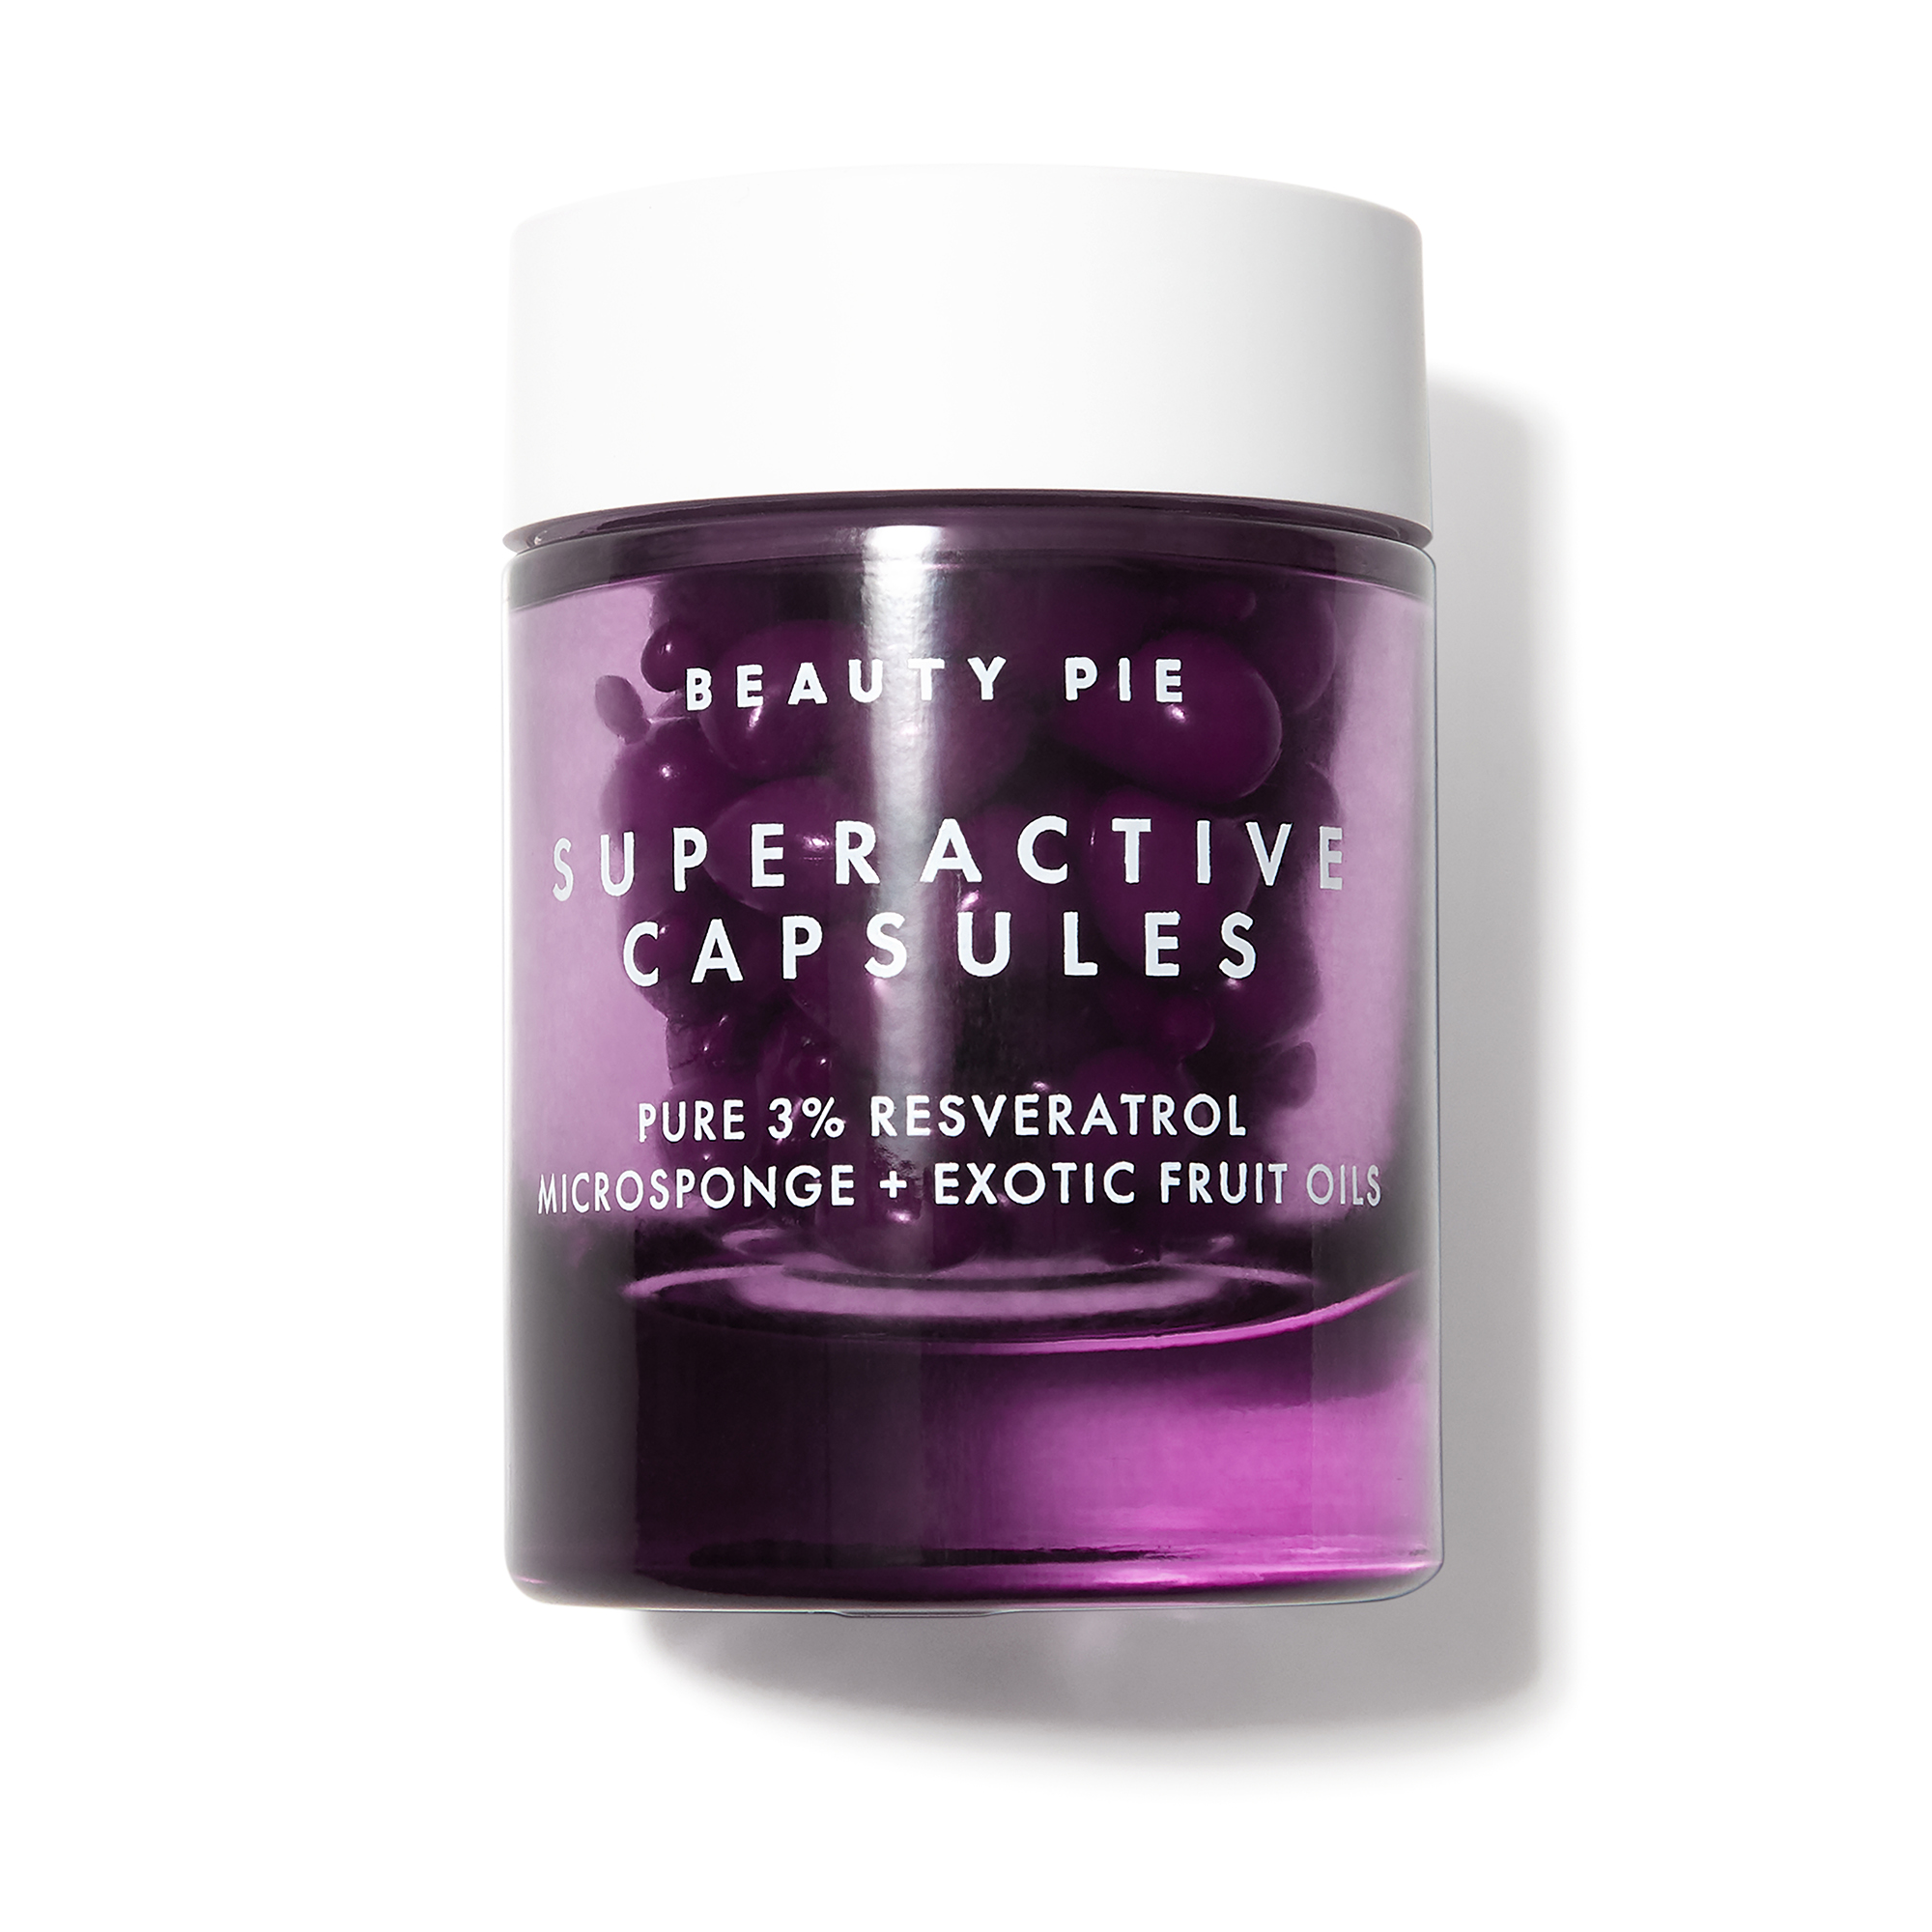 Superactive Capsules Pure 3 Resveratrol Beauty Pie Us